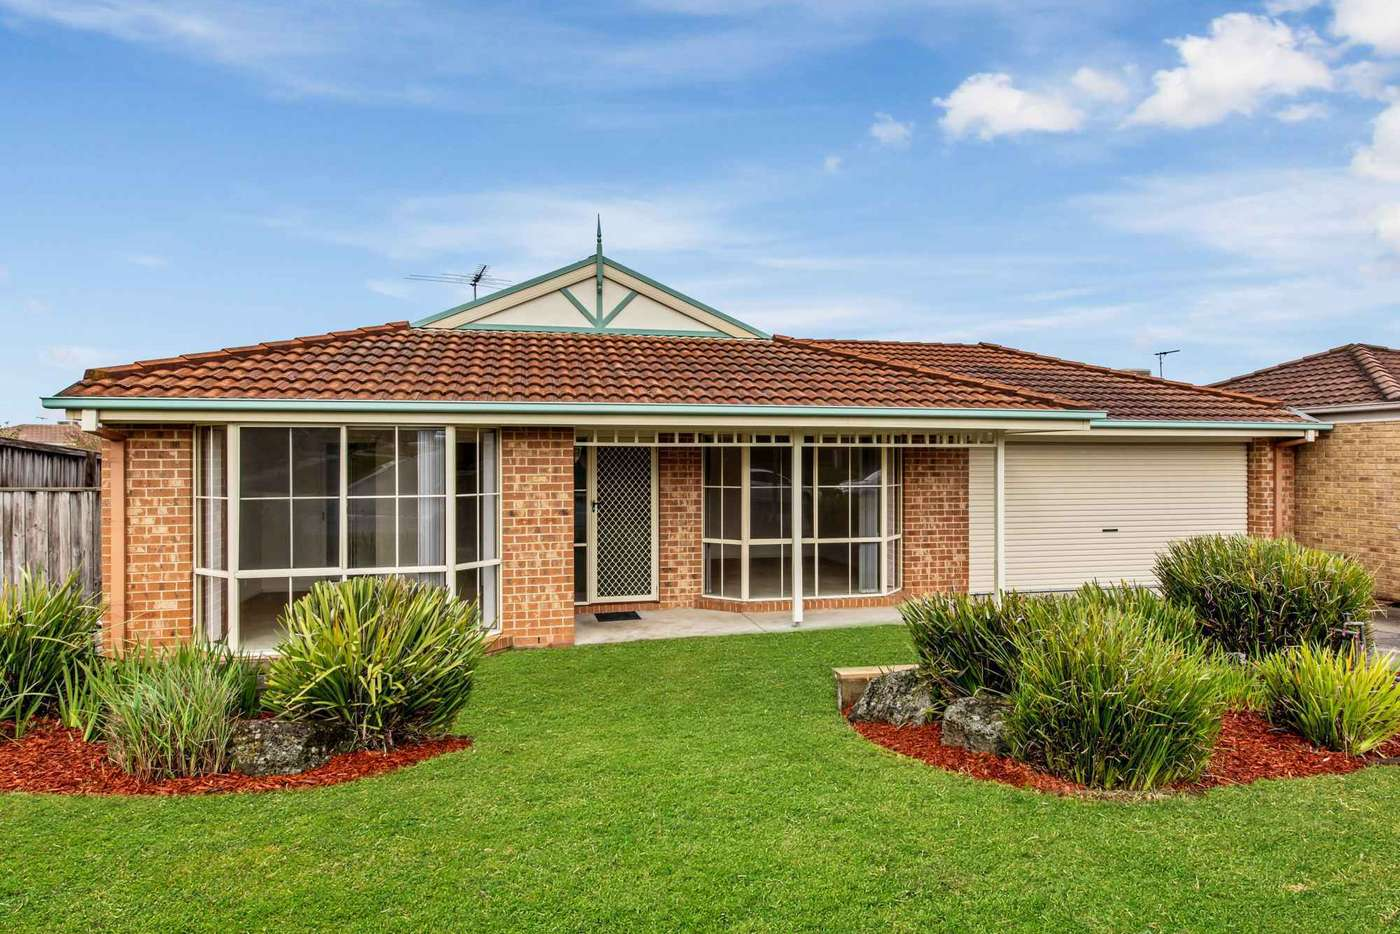 Main view of Homely house listing, 29 Browtop Road, Narre Warren VIC 3805